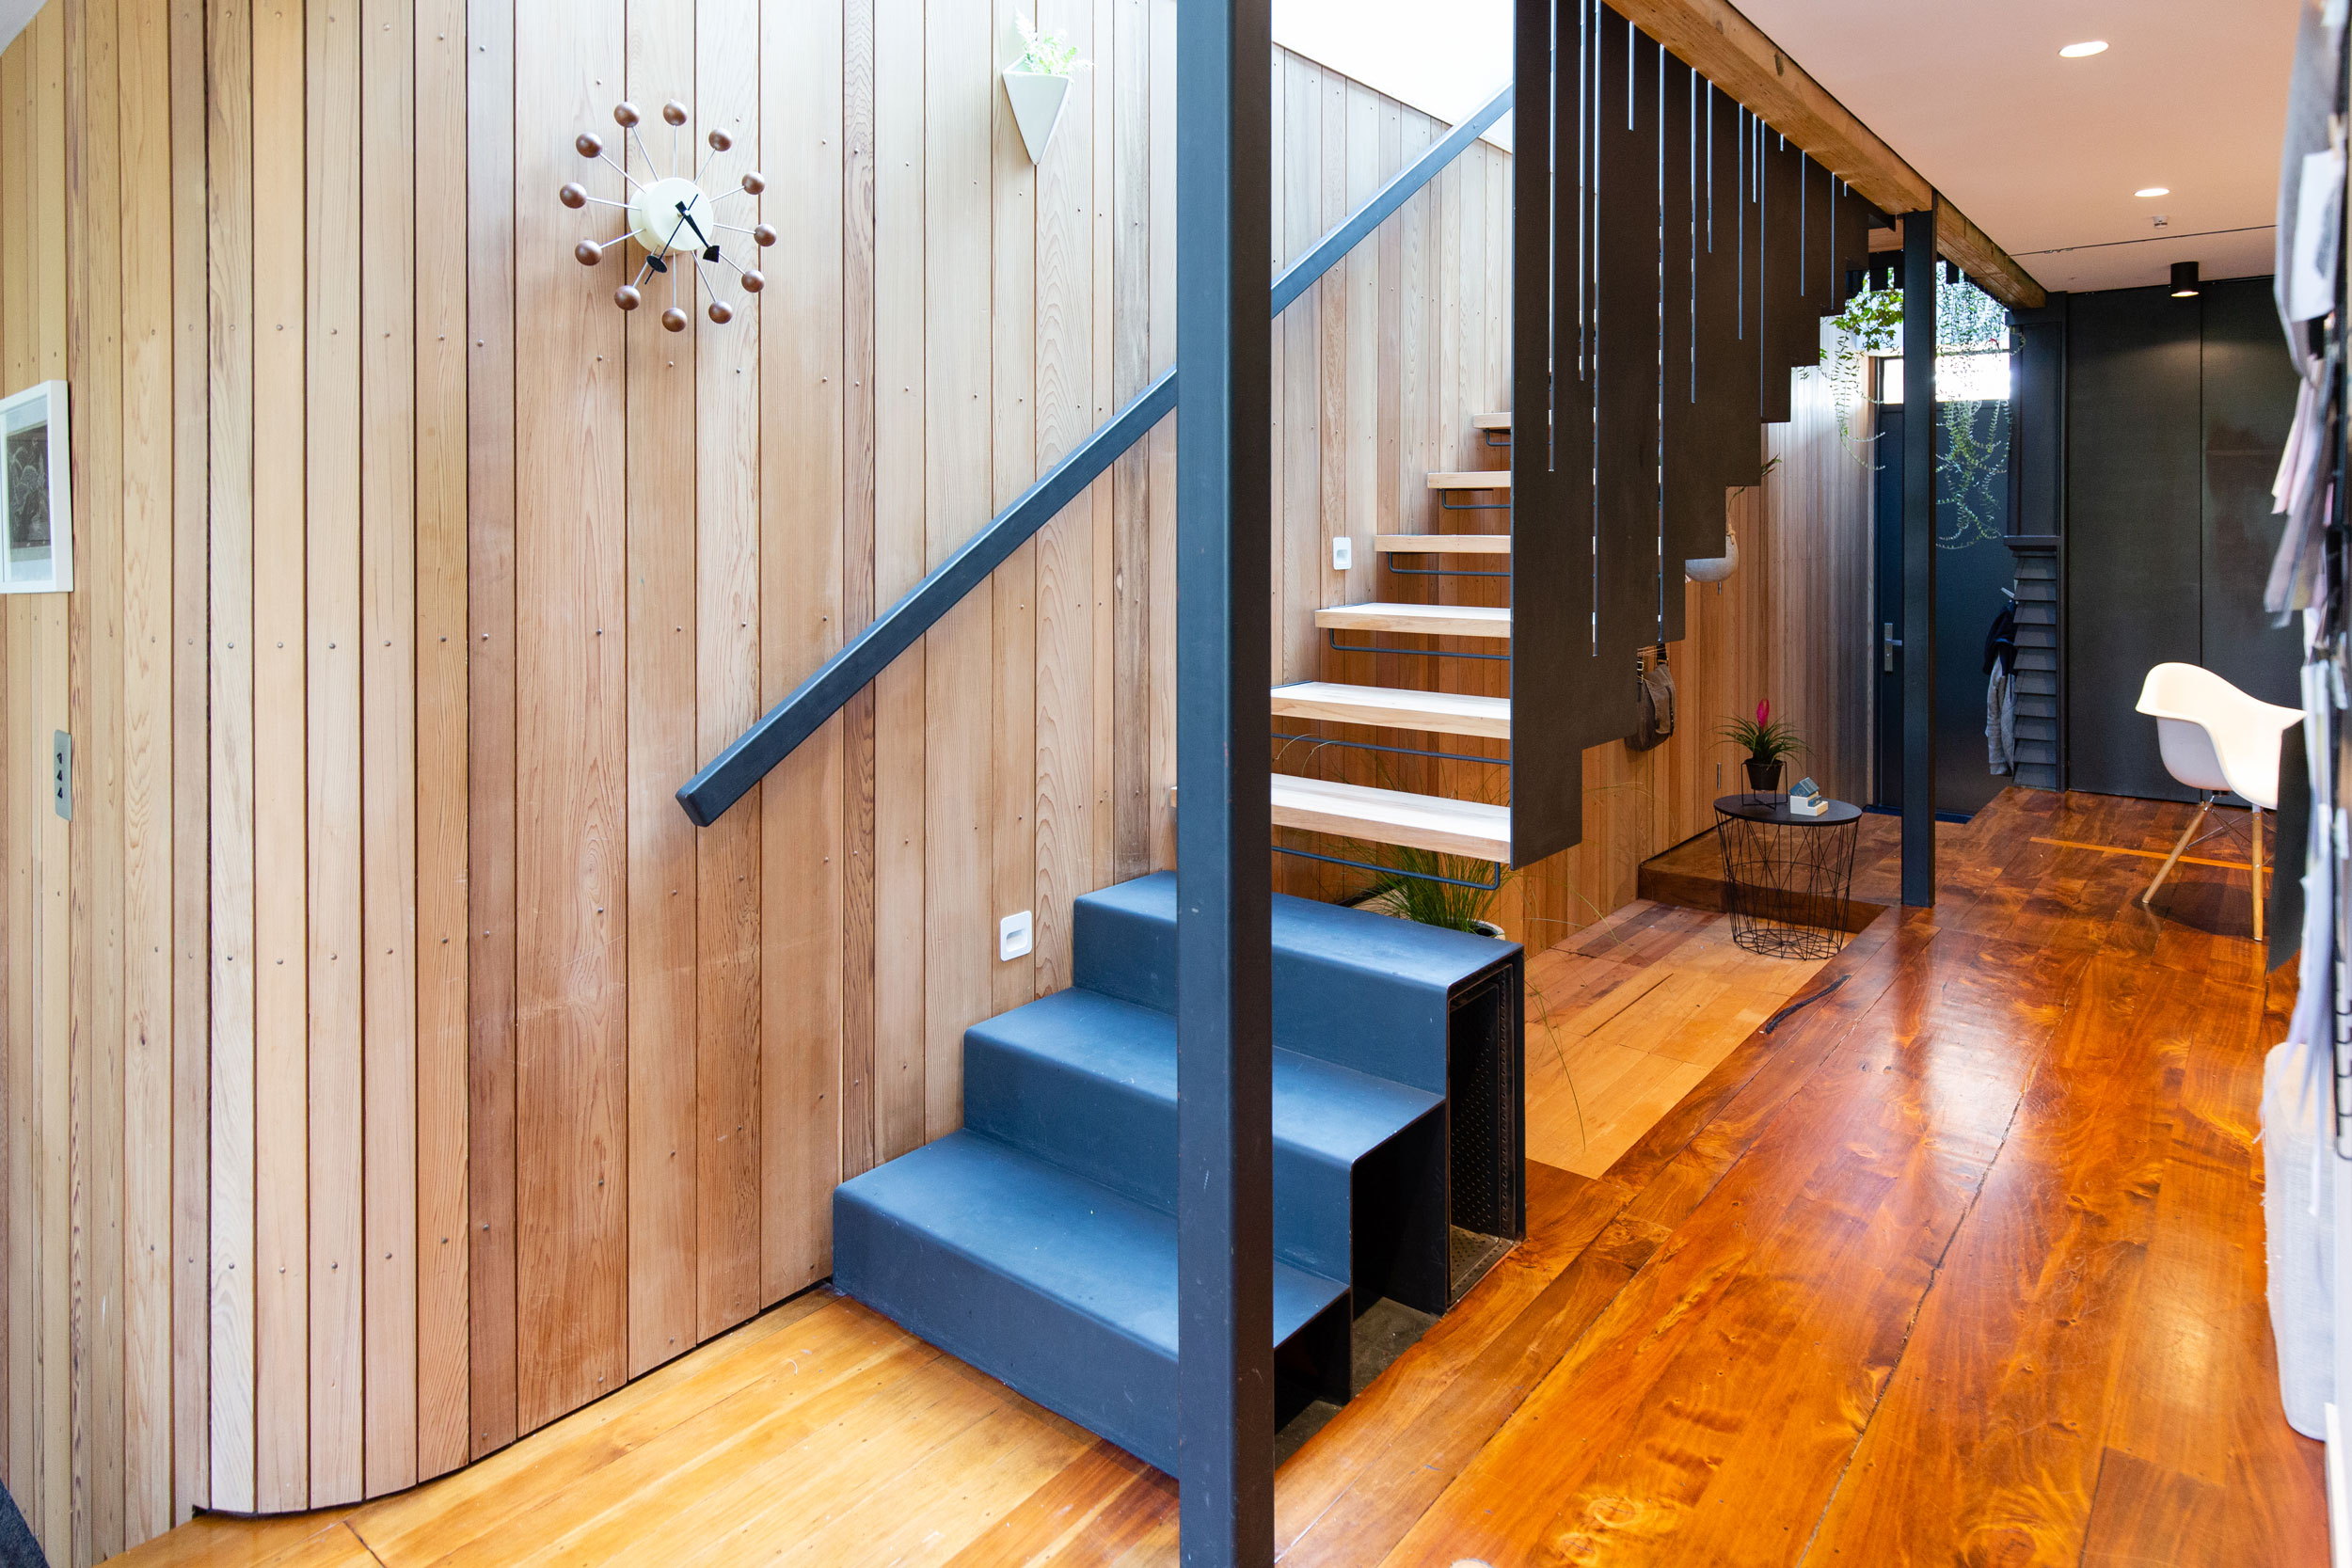 Staircase design consultancy Stairworks designed and built this floating staircase in Auckland